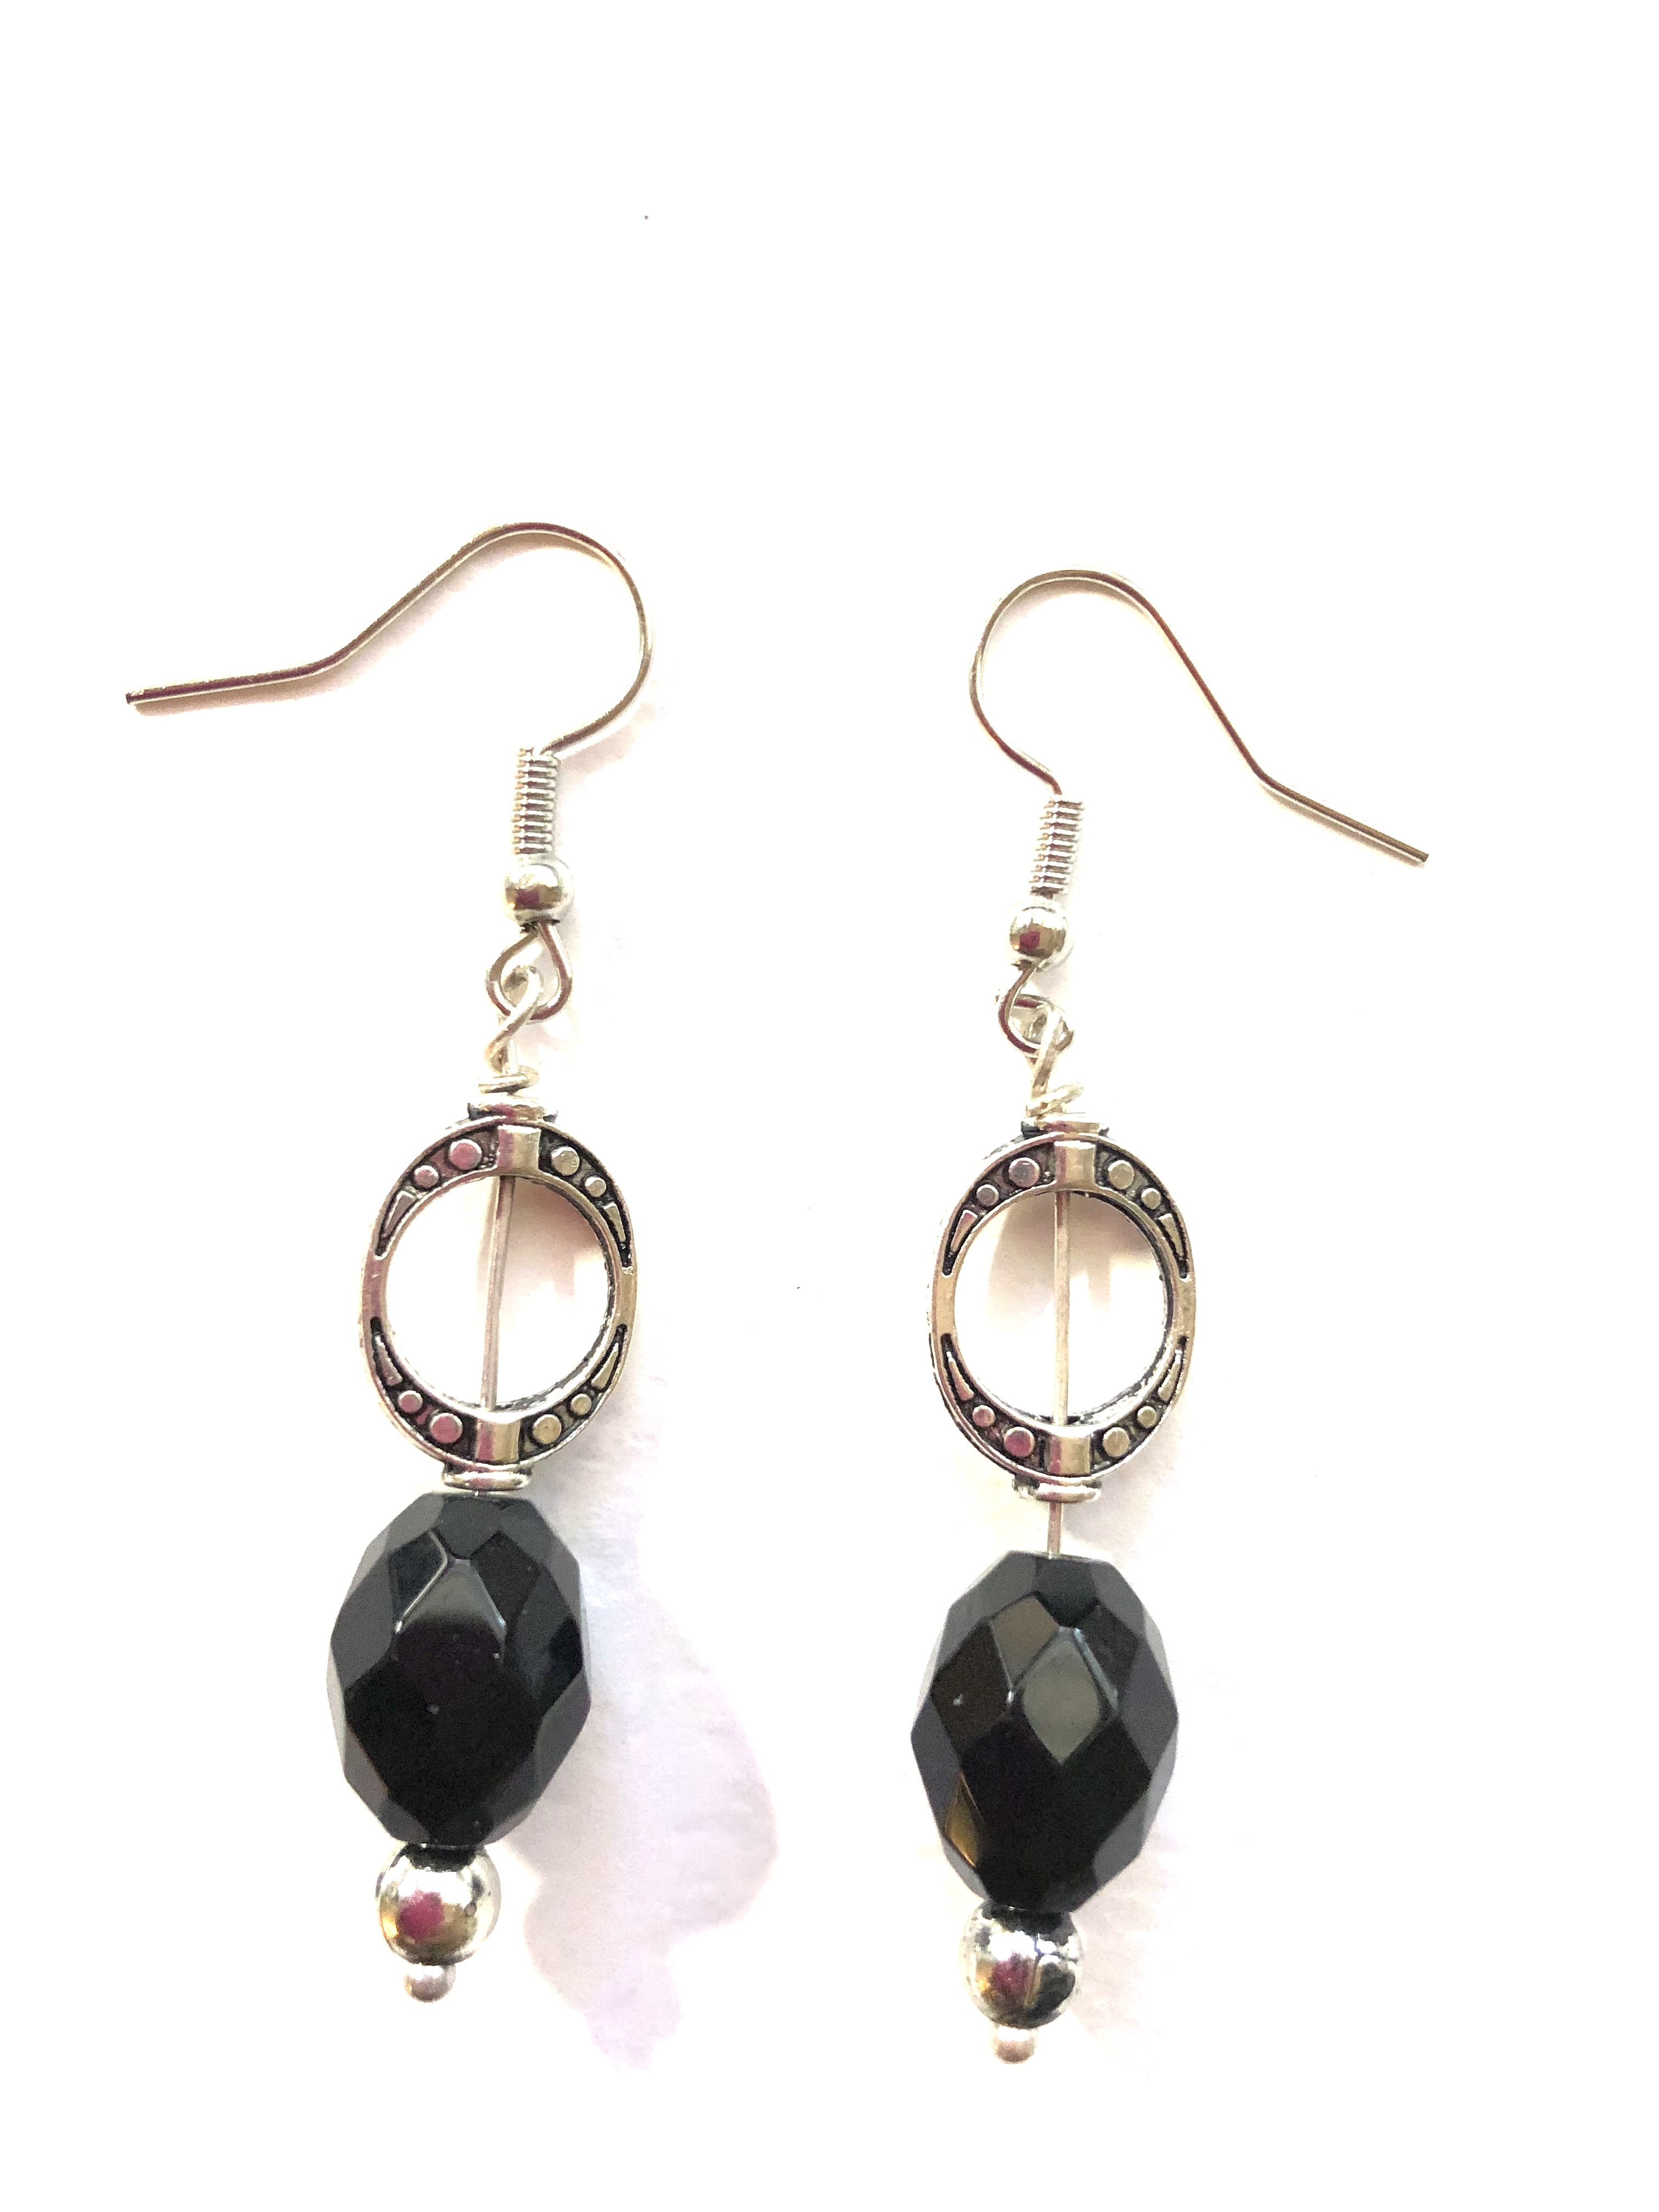 Taashya Dangle and Drop Crown Shaped Earring with a Pink Bead